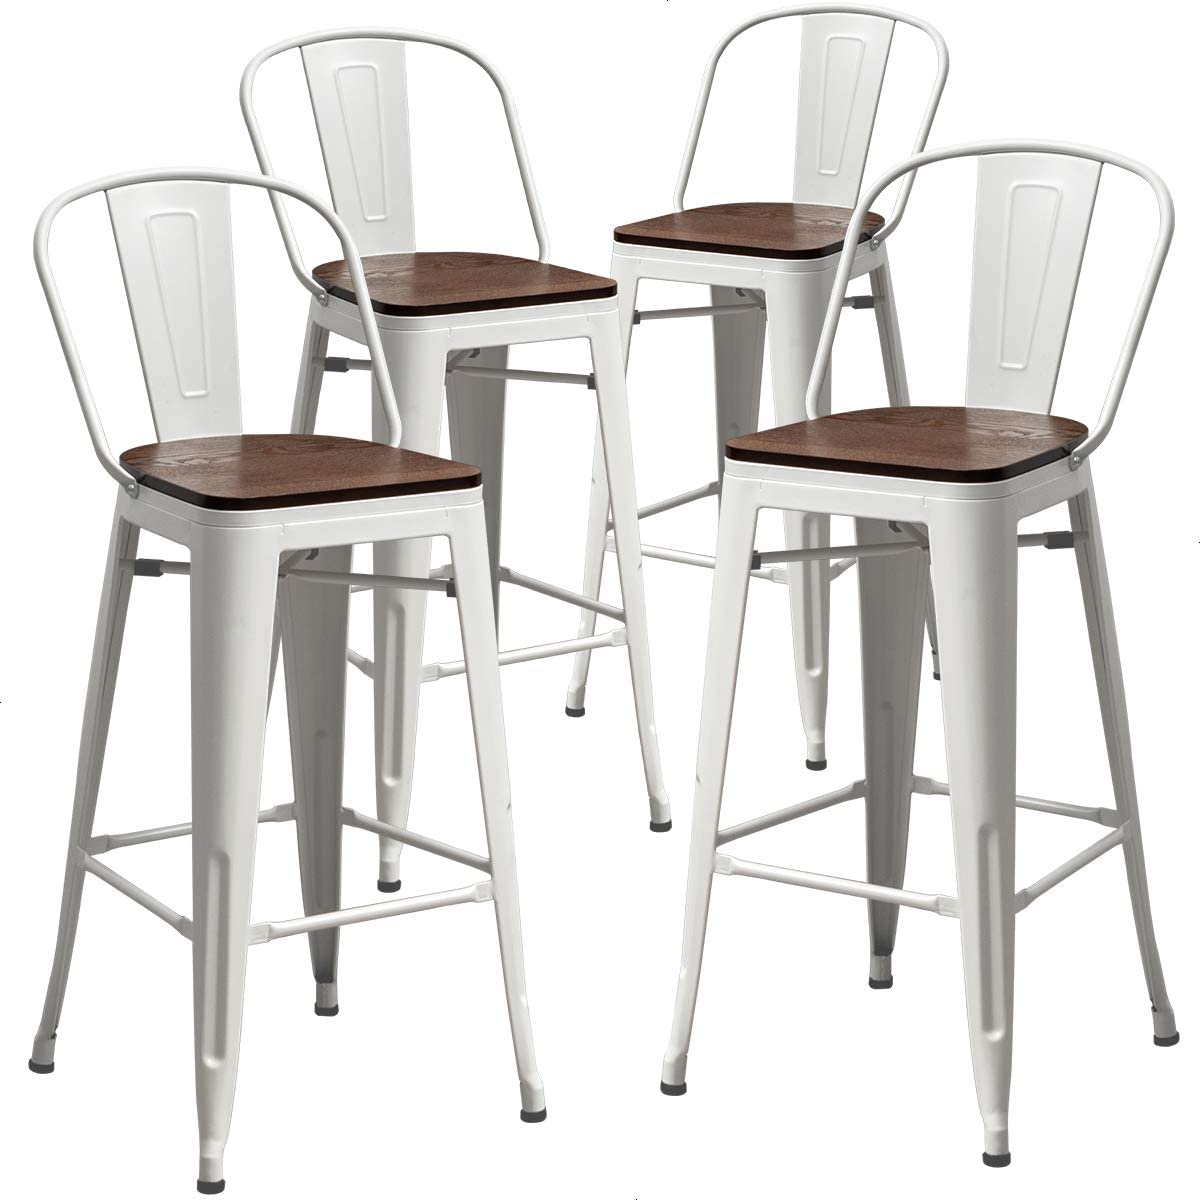 TONGLI Metal Counter Height Bar Stools Kitchen Counter Stools Set of 4 Ding Kitchen Chairs High Back 30 Inches Bar Chairs Stools White, High Back